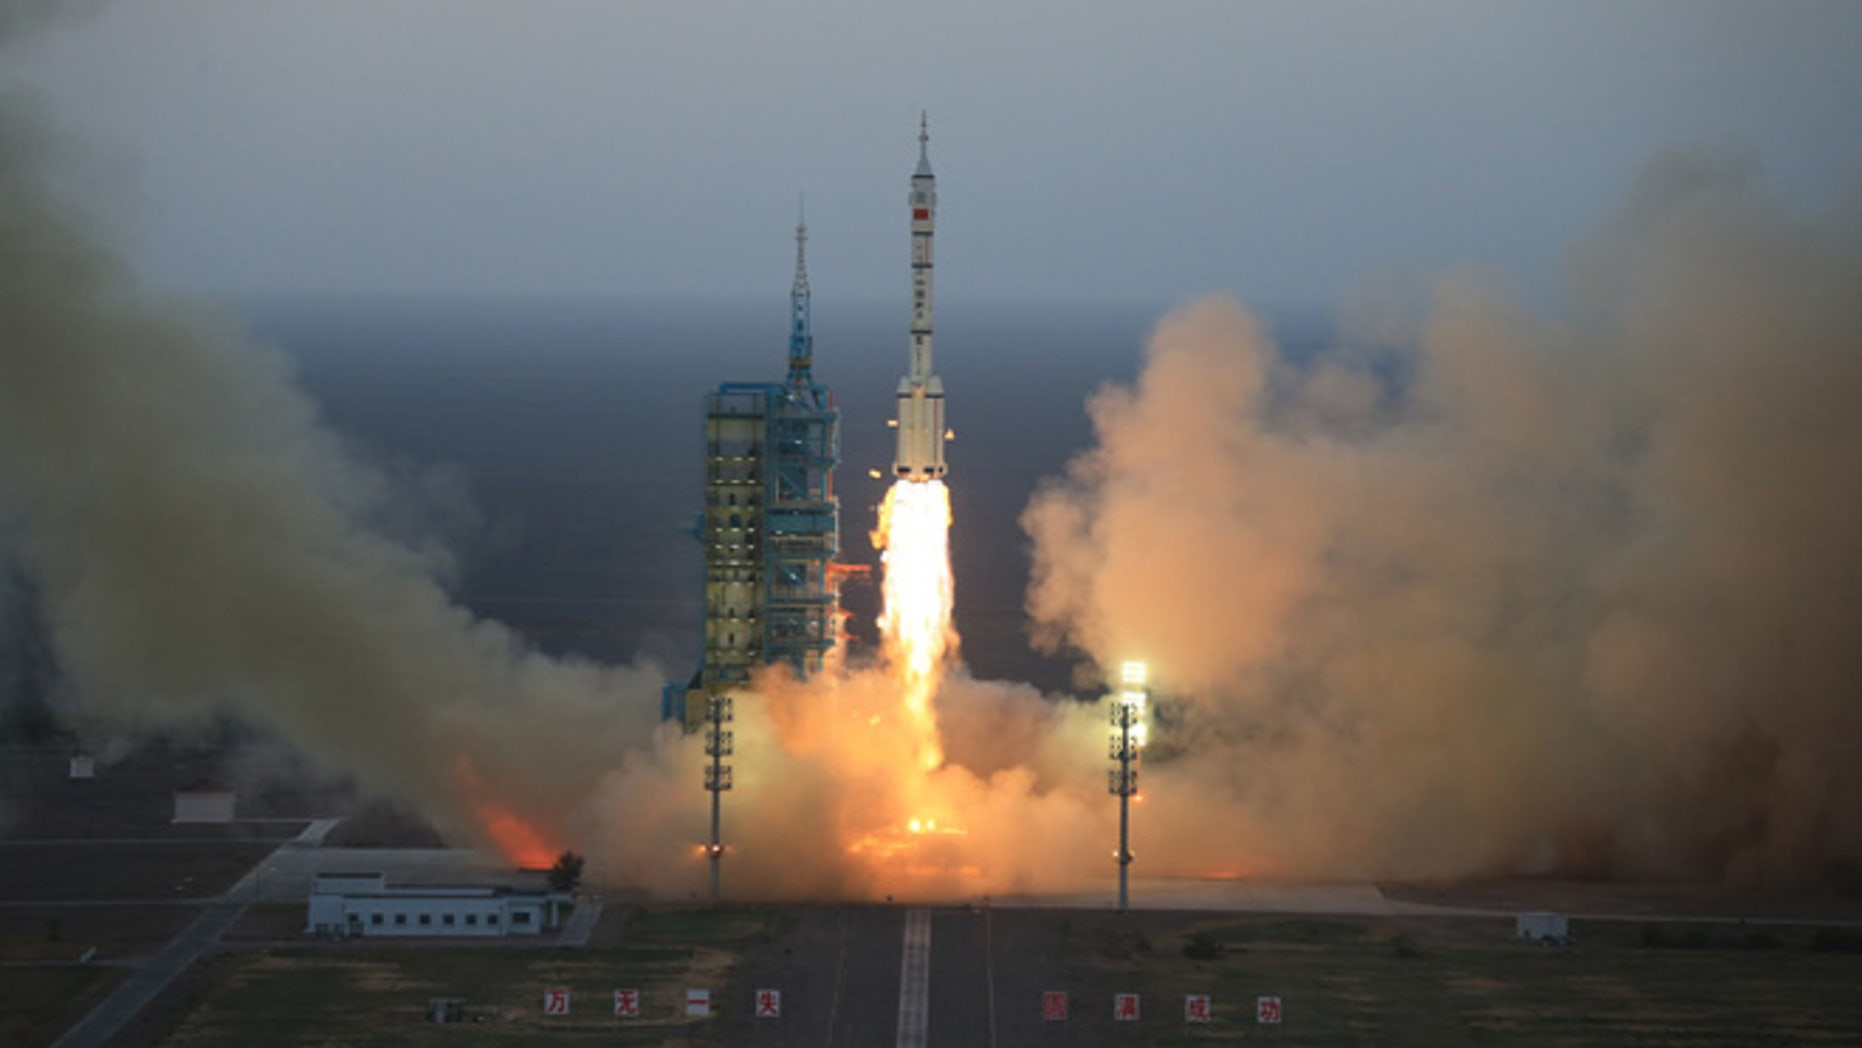 In this photo provided by China's Xinhua News Agency, the Long March-2F carrier rocket carrying China's Shenzhou 11 spacecraft blasts off from the launch pad at the Jiuquan Satellite Launch Center in Jiuquan, northwest China's Gansu Province, Monday, Oct. 17, 2016.